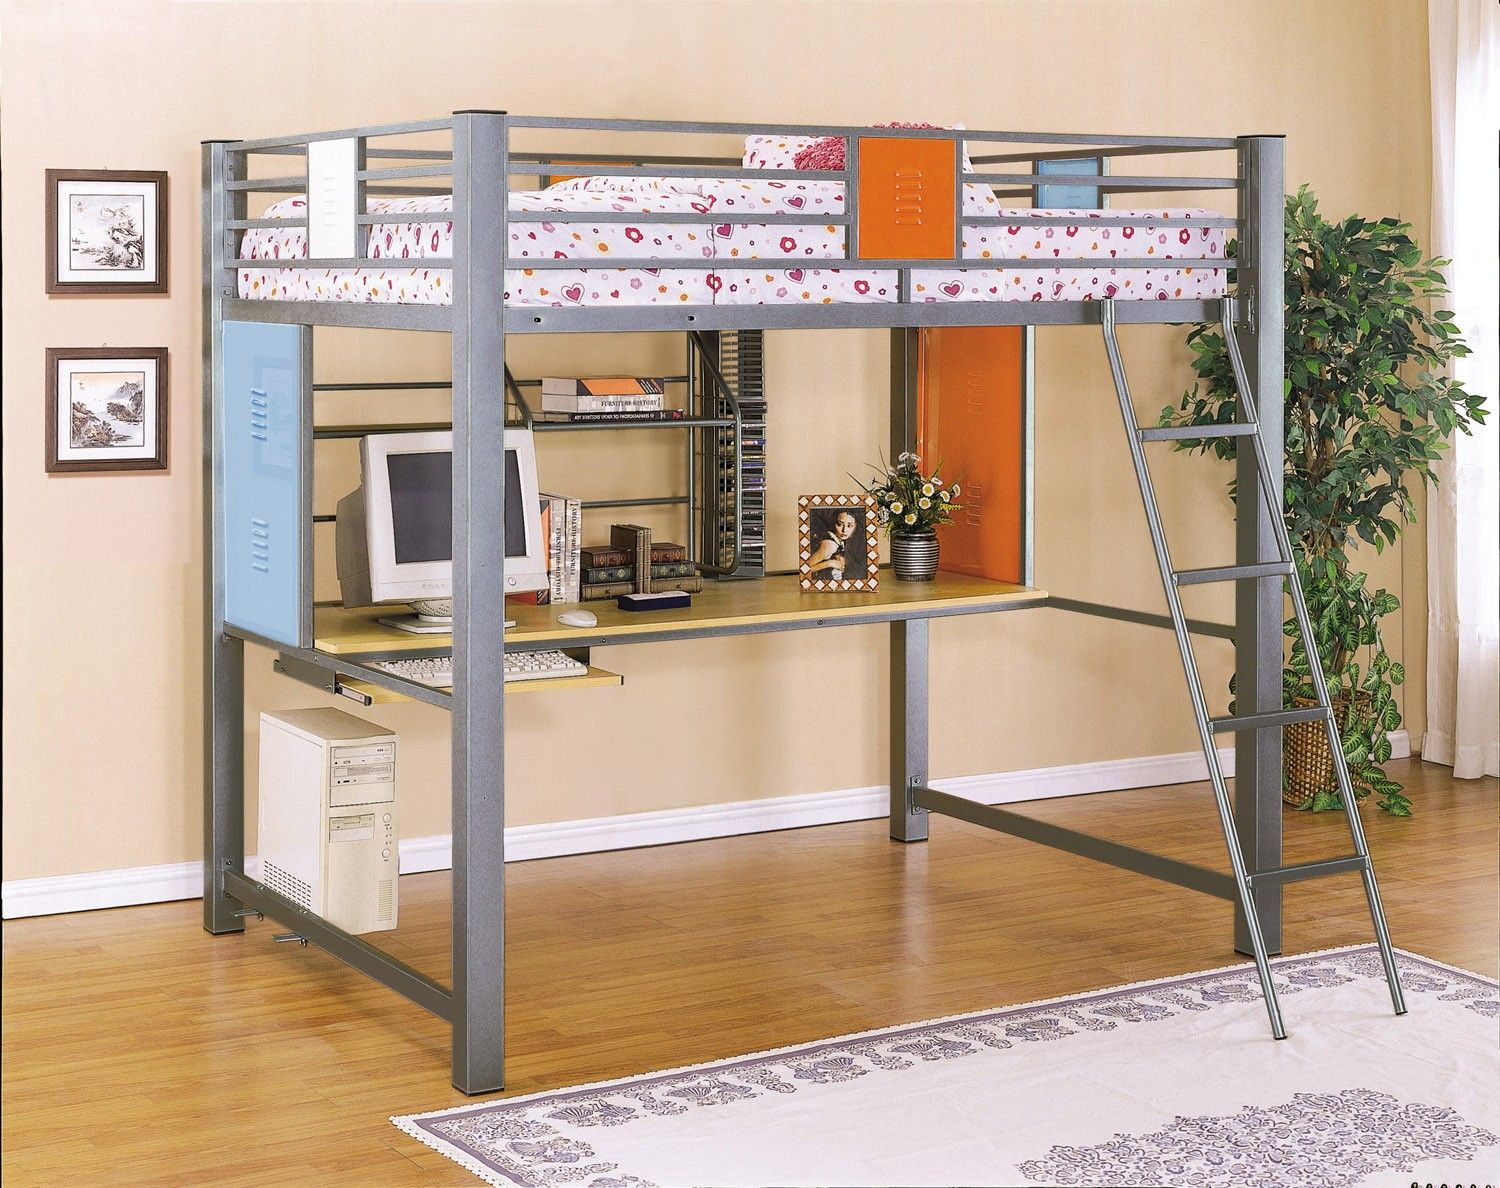 Bunk bed with desk for teenagers - Powell Teen Trends Full Loft Study Bunk Bed Price 1 016 00